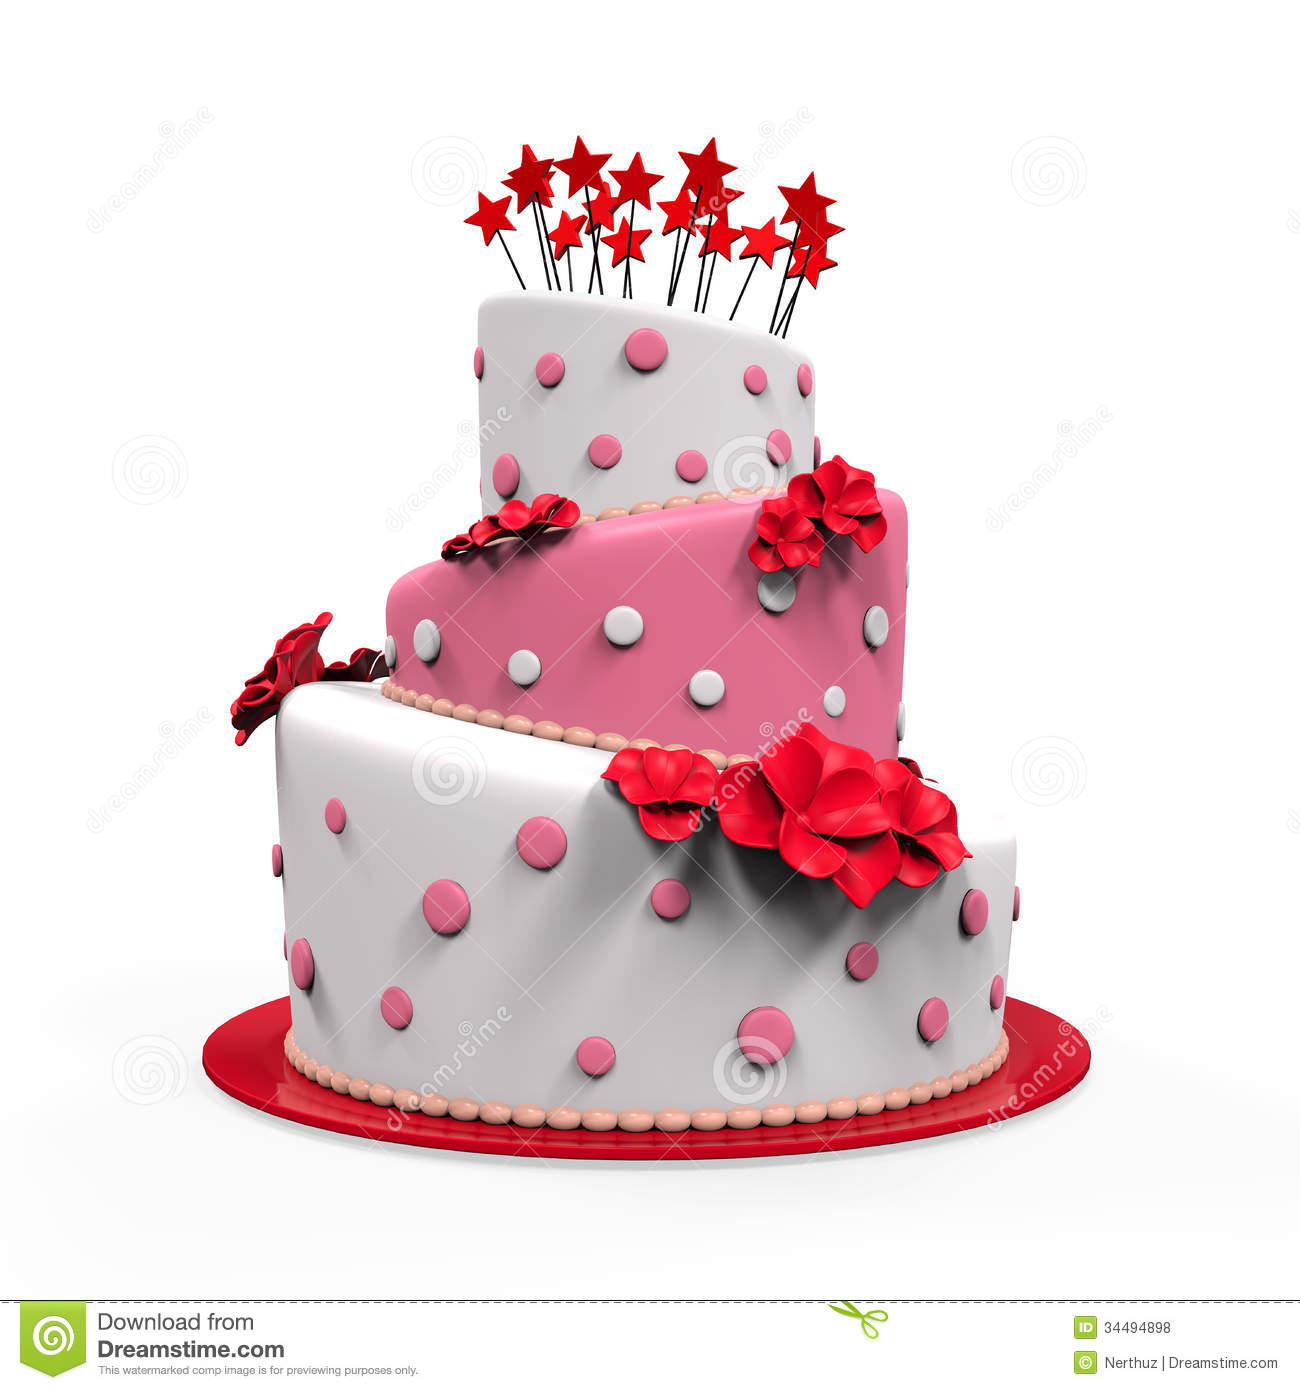 Big Cake Isolated Royalty Free Stock Photos - Image: 34494898